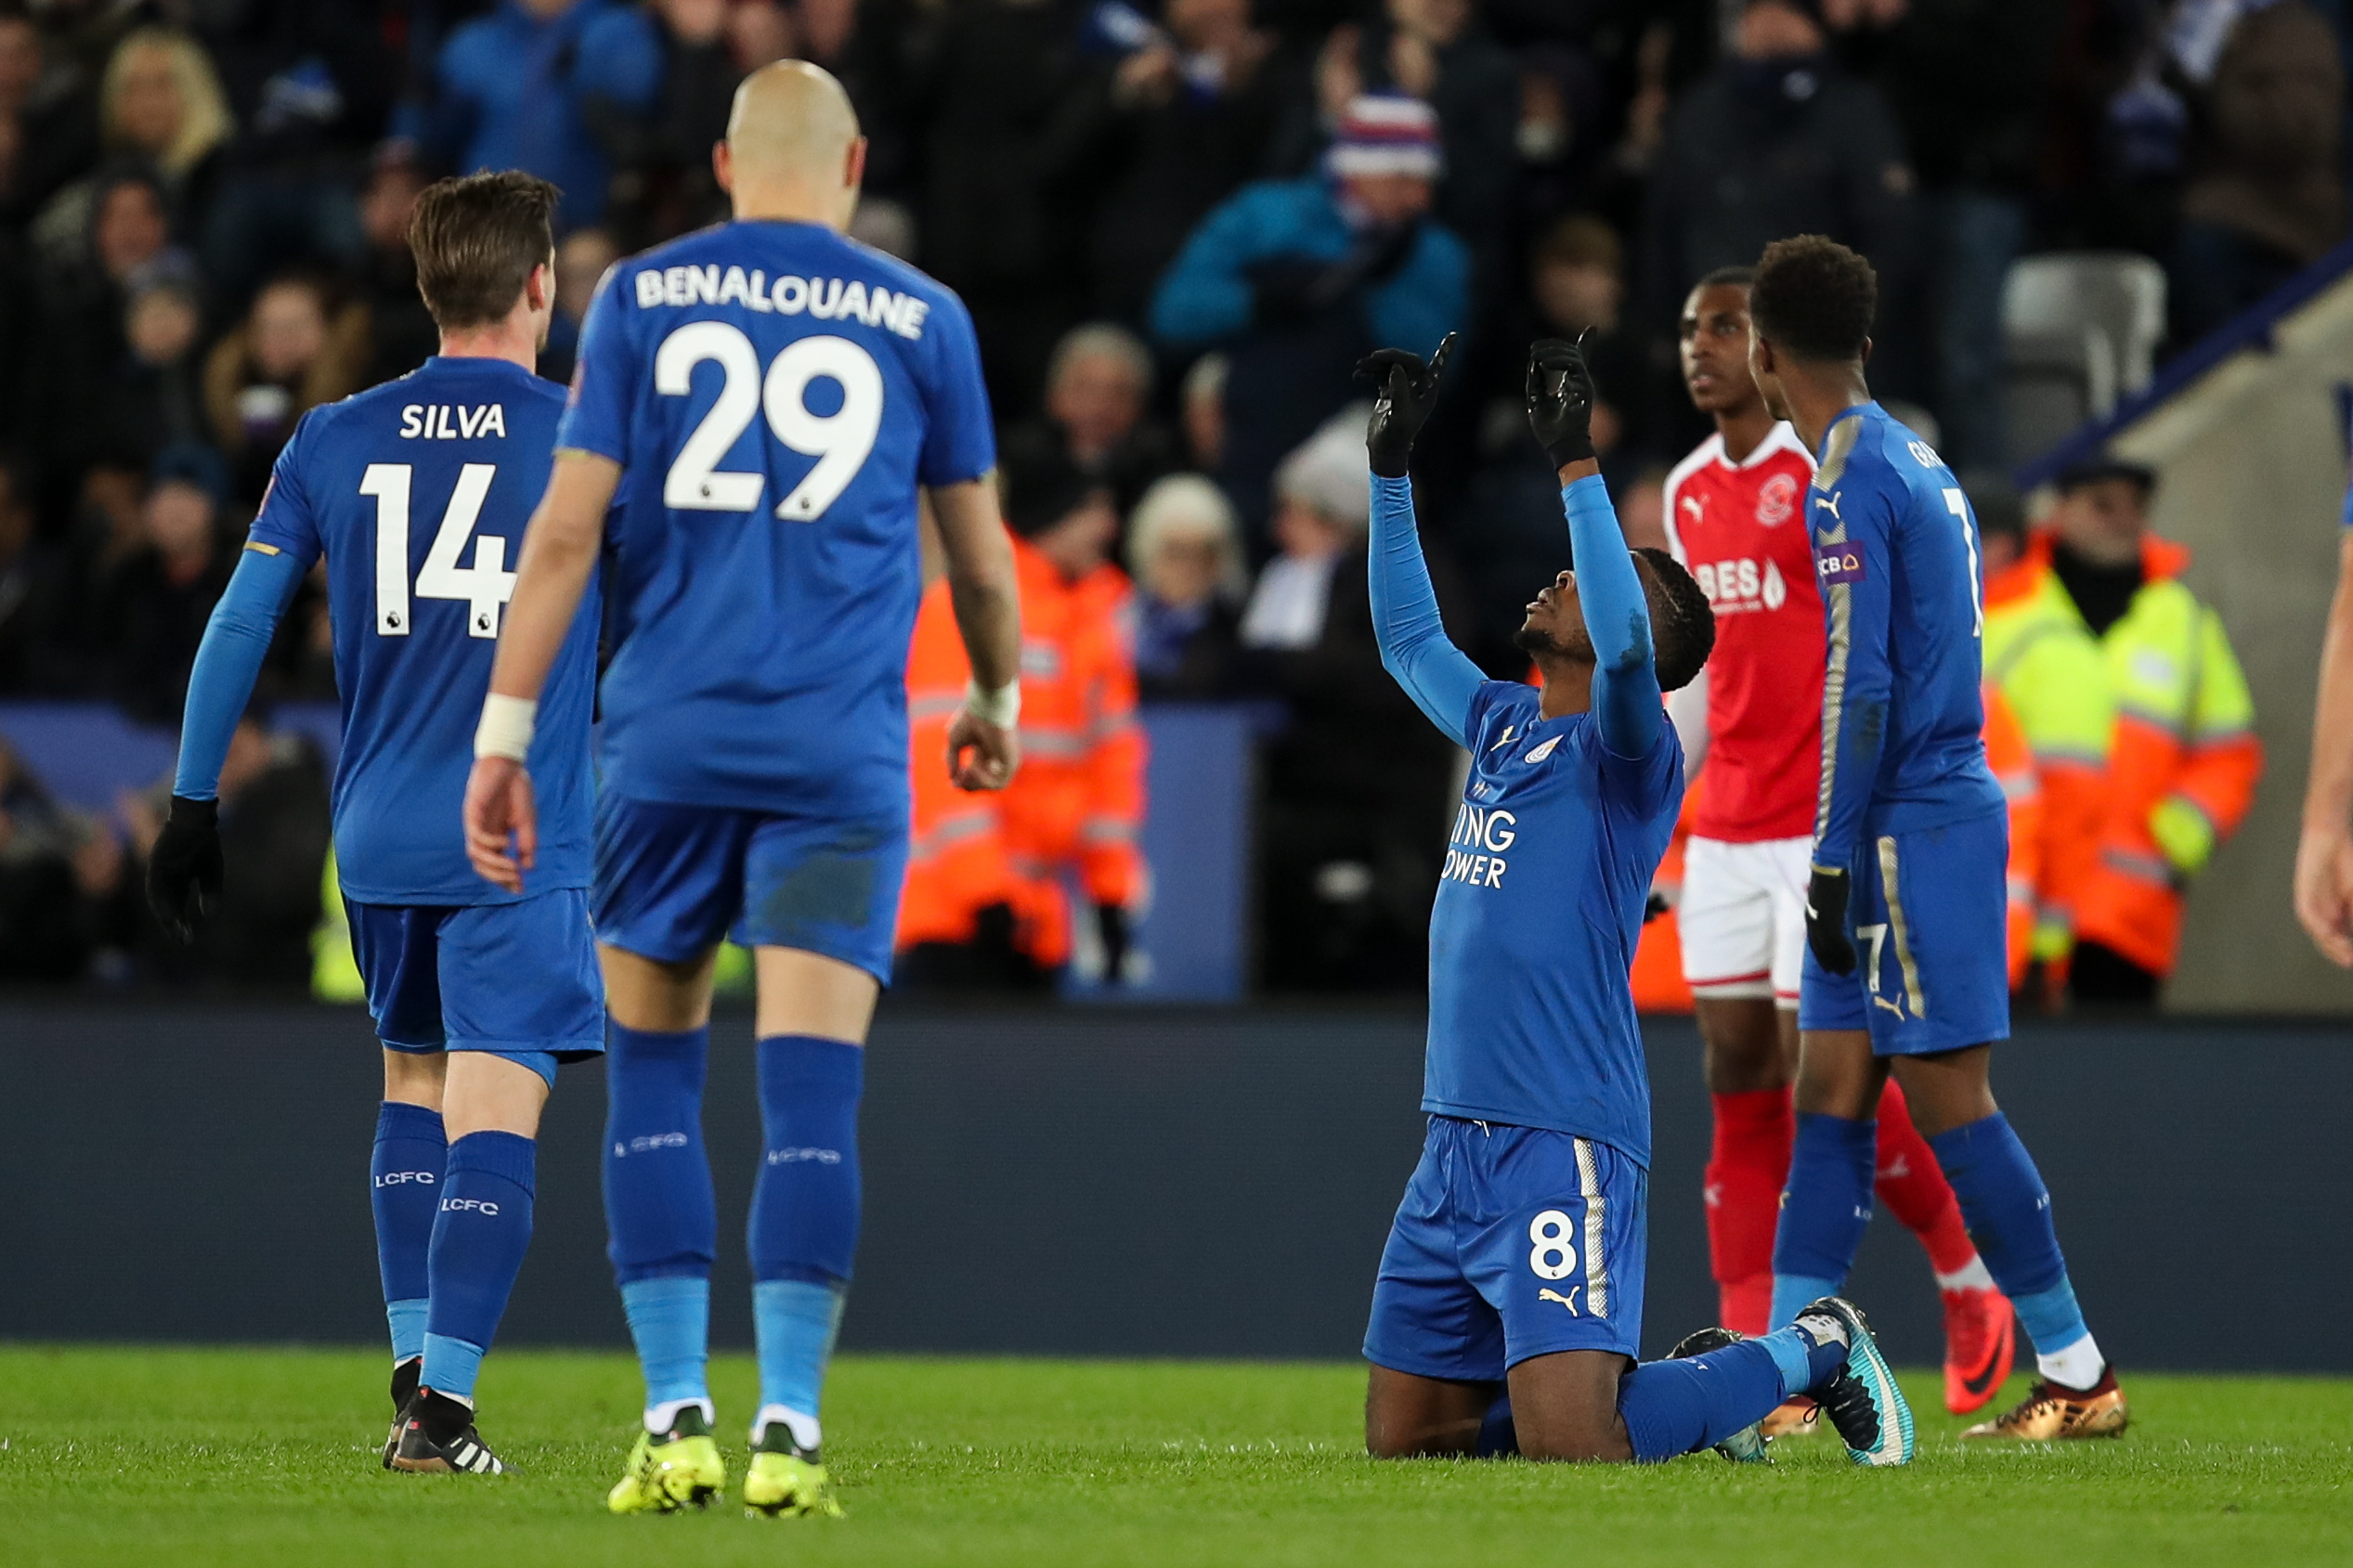 FA Cup: Iheanacho, Ndidi on song as Leicester ease into last 16